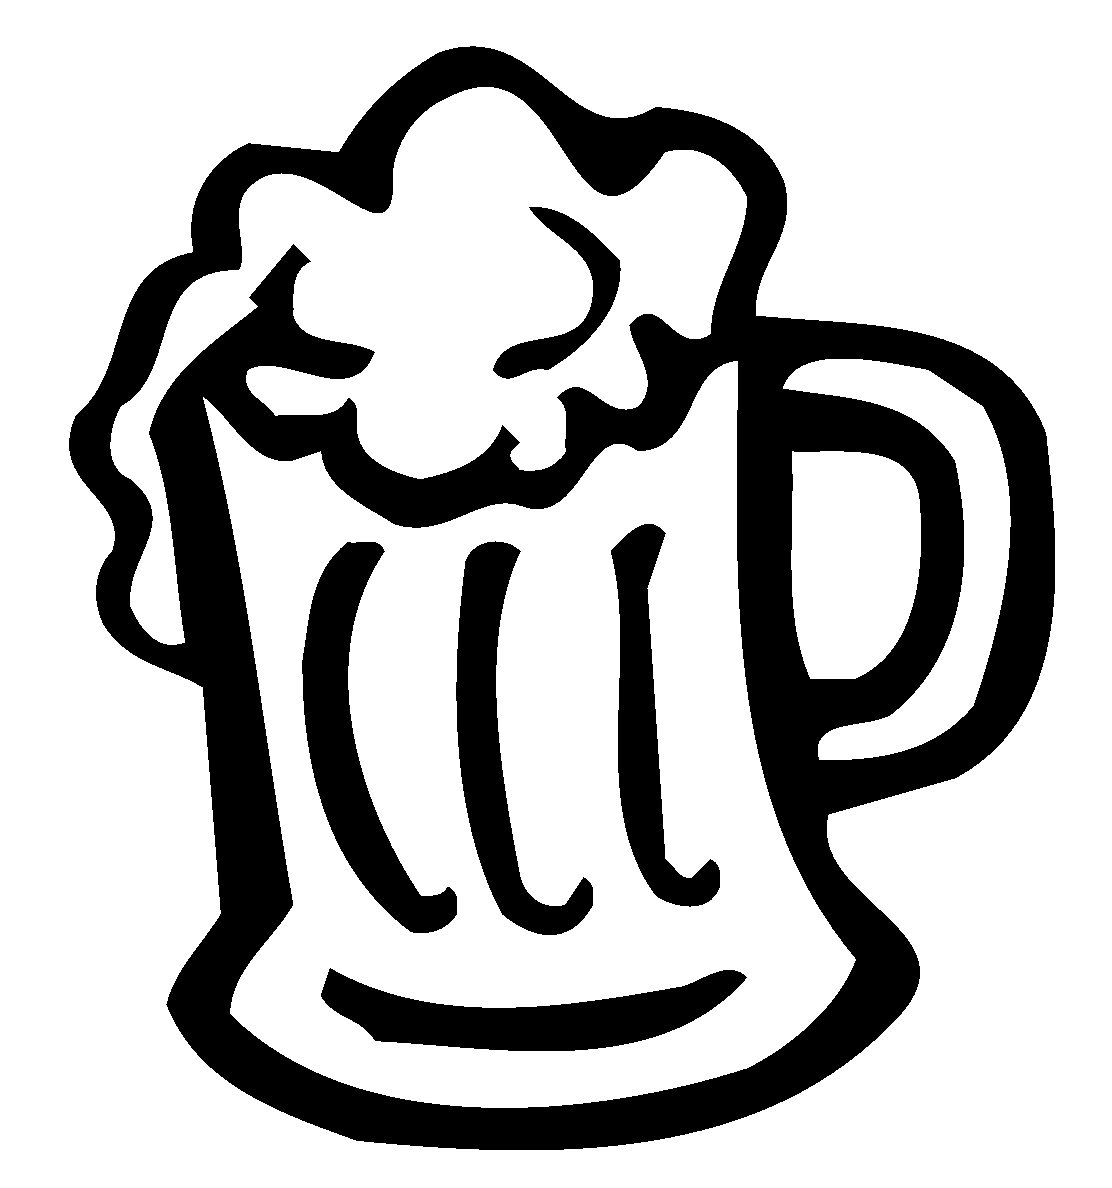 Beer clipart black and white Grandmother  Clipart Free Popular